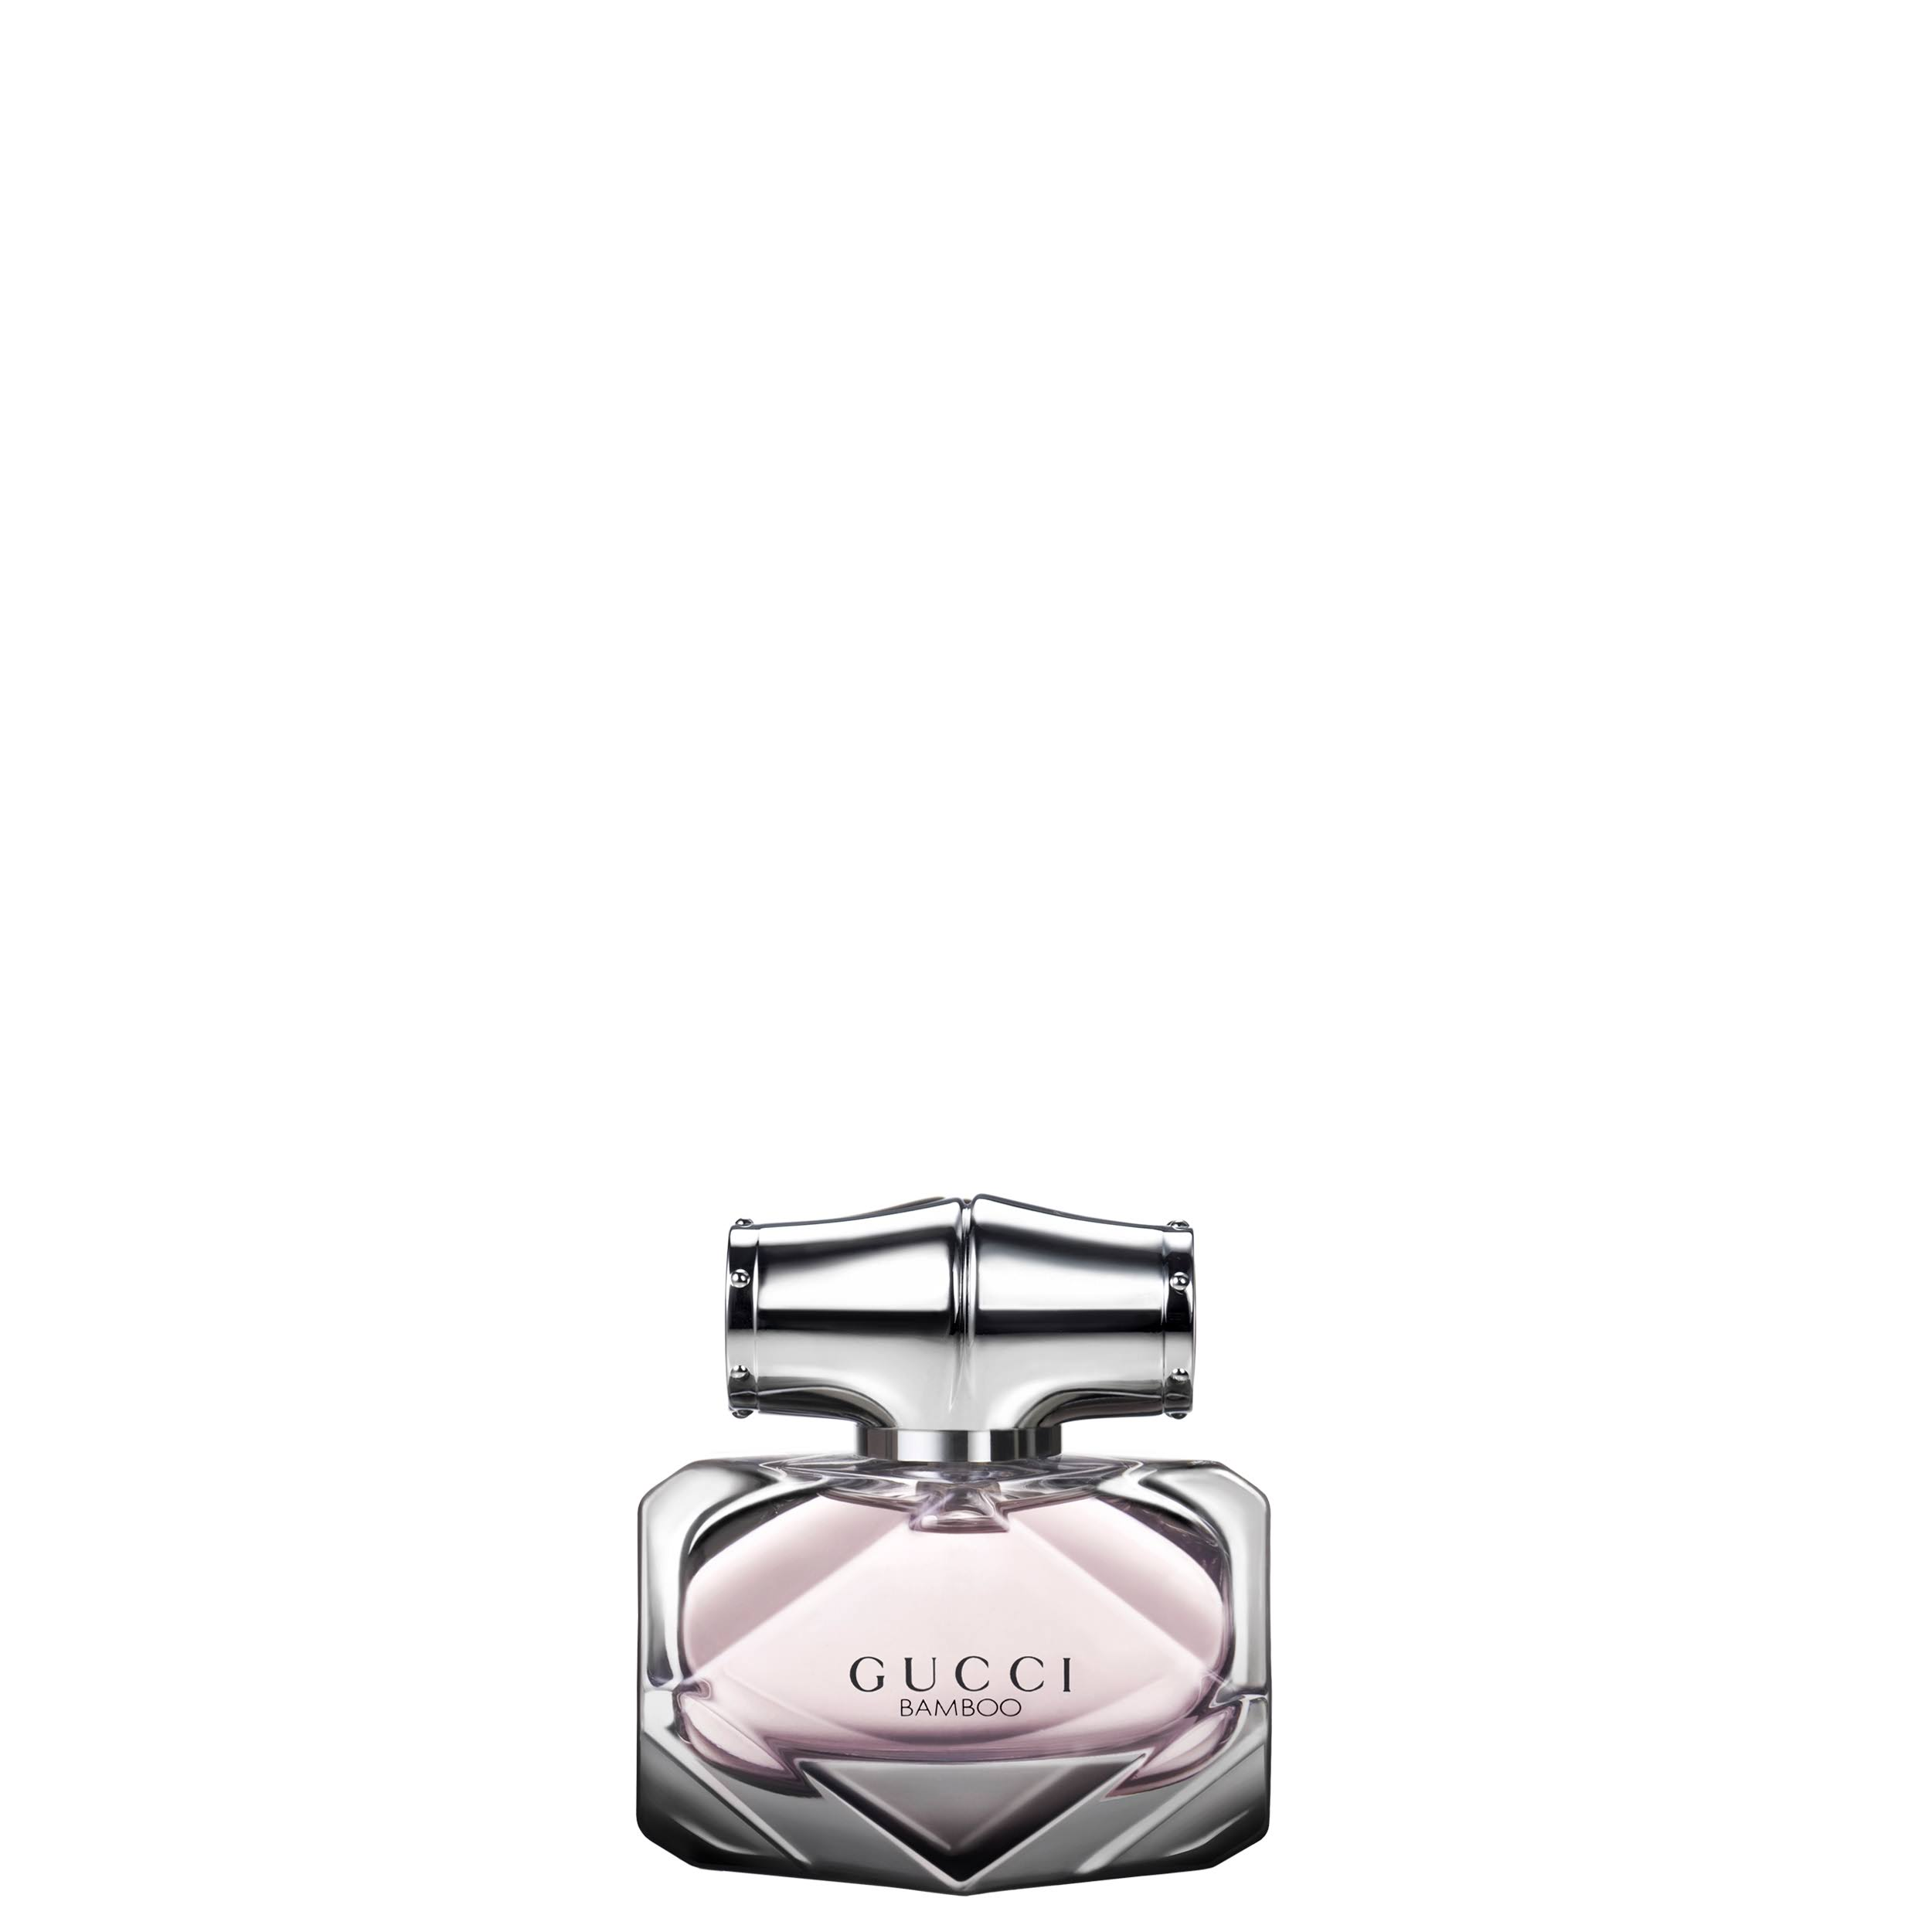 Gucci Bamboo for Women Eau De Parfum Spray - 50ml